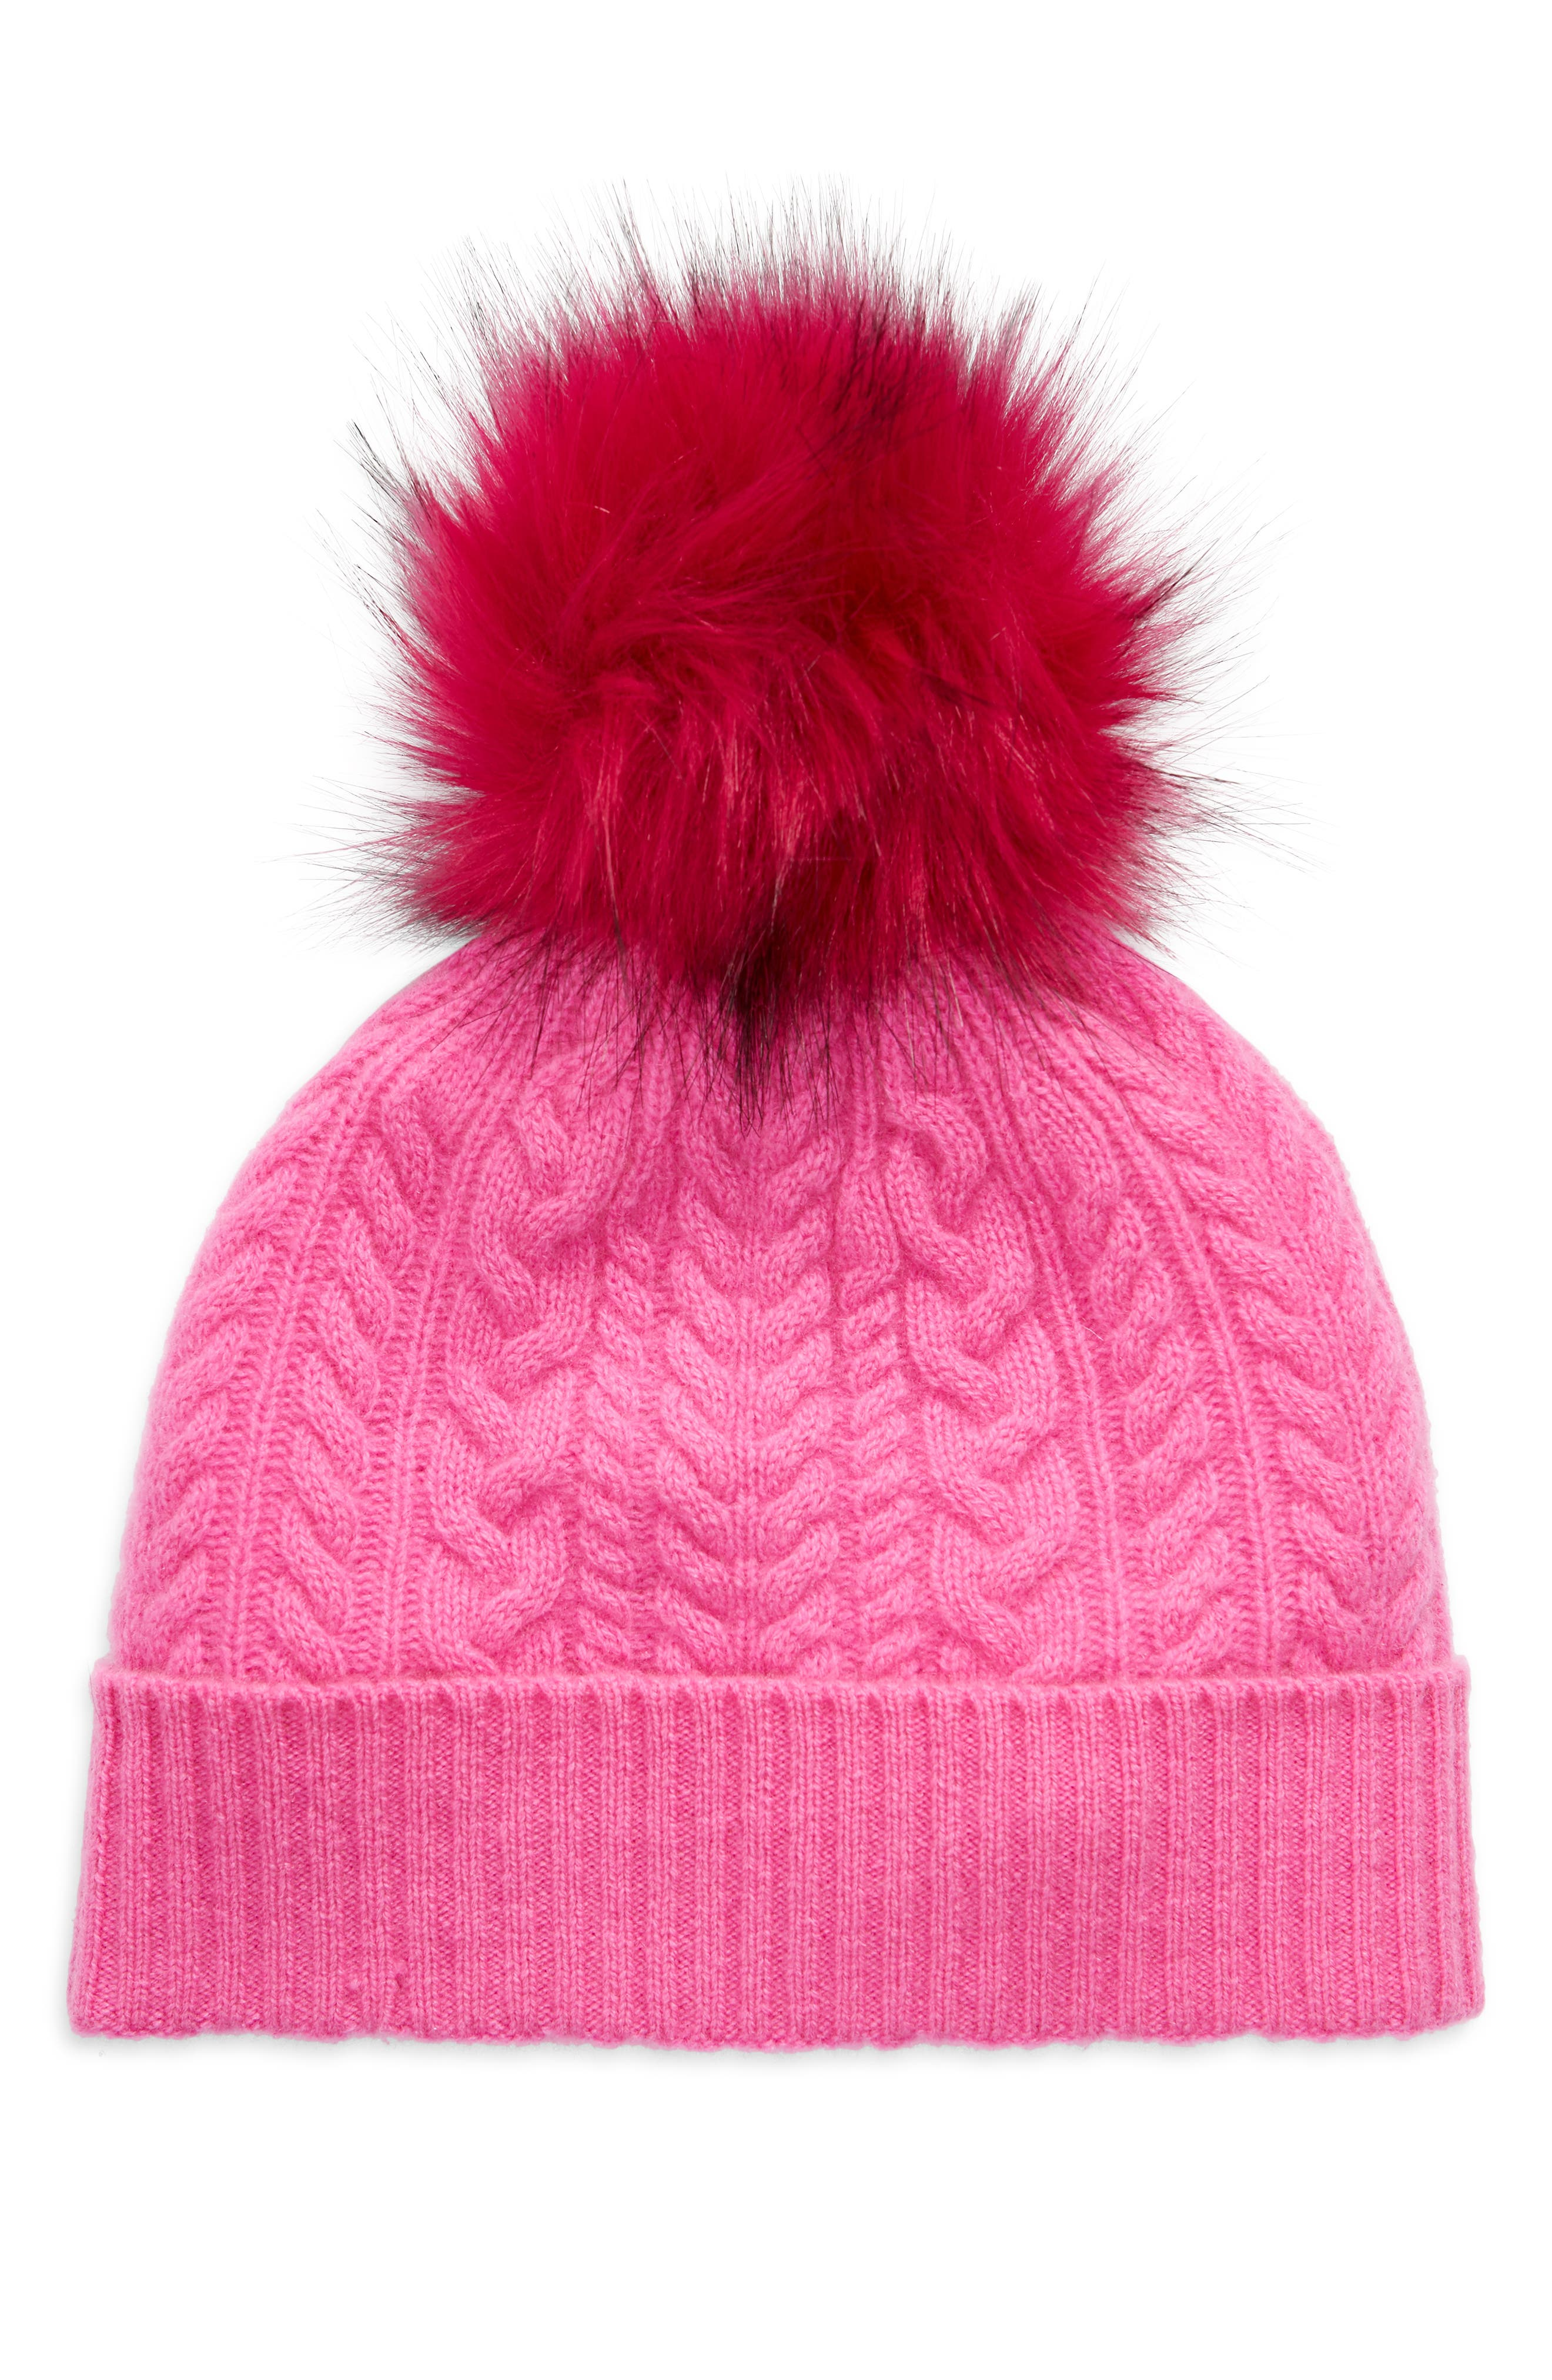 A fluffy faux-fur pom sits atop this luxe cashmere beanie knit with cozy cables and softly ribbed trim. Style Name: Halogen Cash Chunky Faux Fur Pom Cashmere Beanie. Style Number: 6080840. Available in stores.